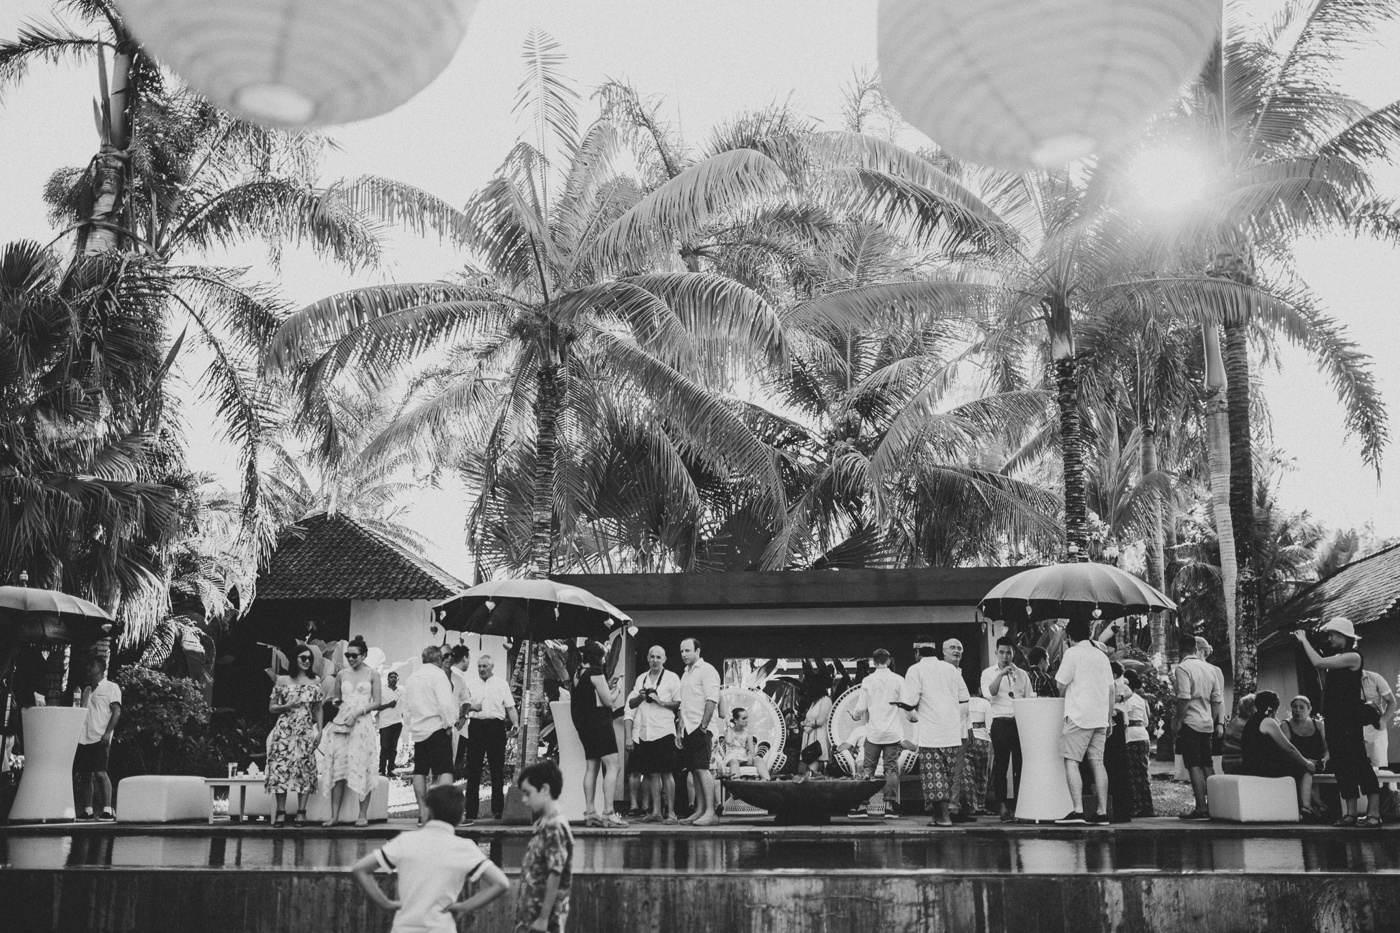 Deb-Ibs_Bali-Tropical-Relaxed-Wedding_Destination-Wedding-Photography_Melbourne-Wedding-Photographer_57